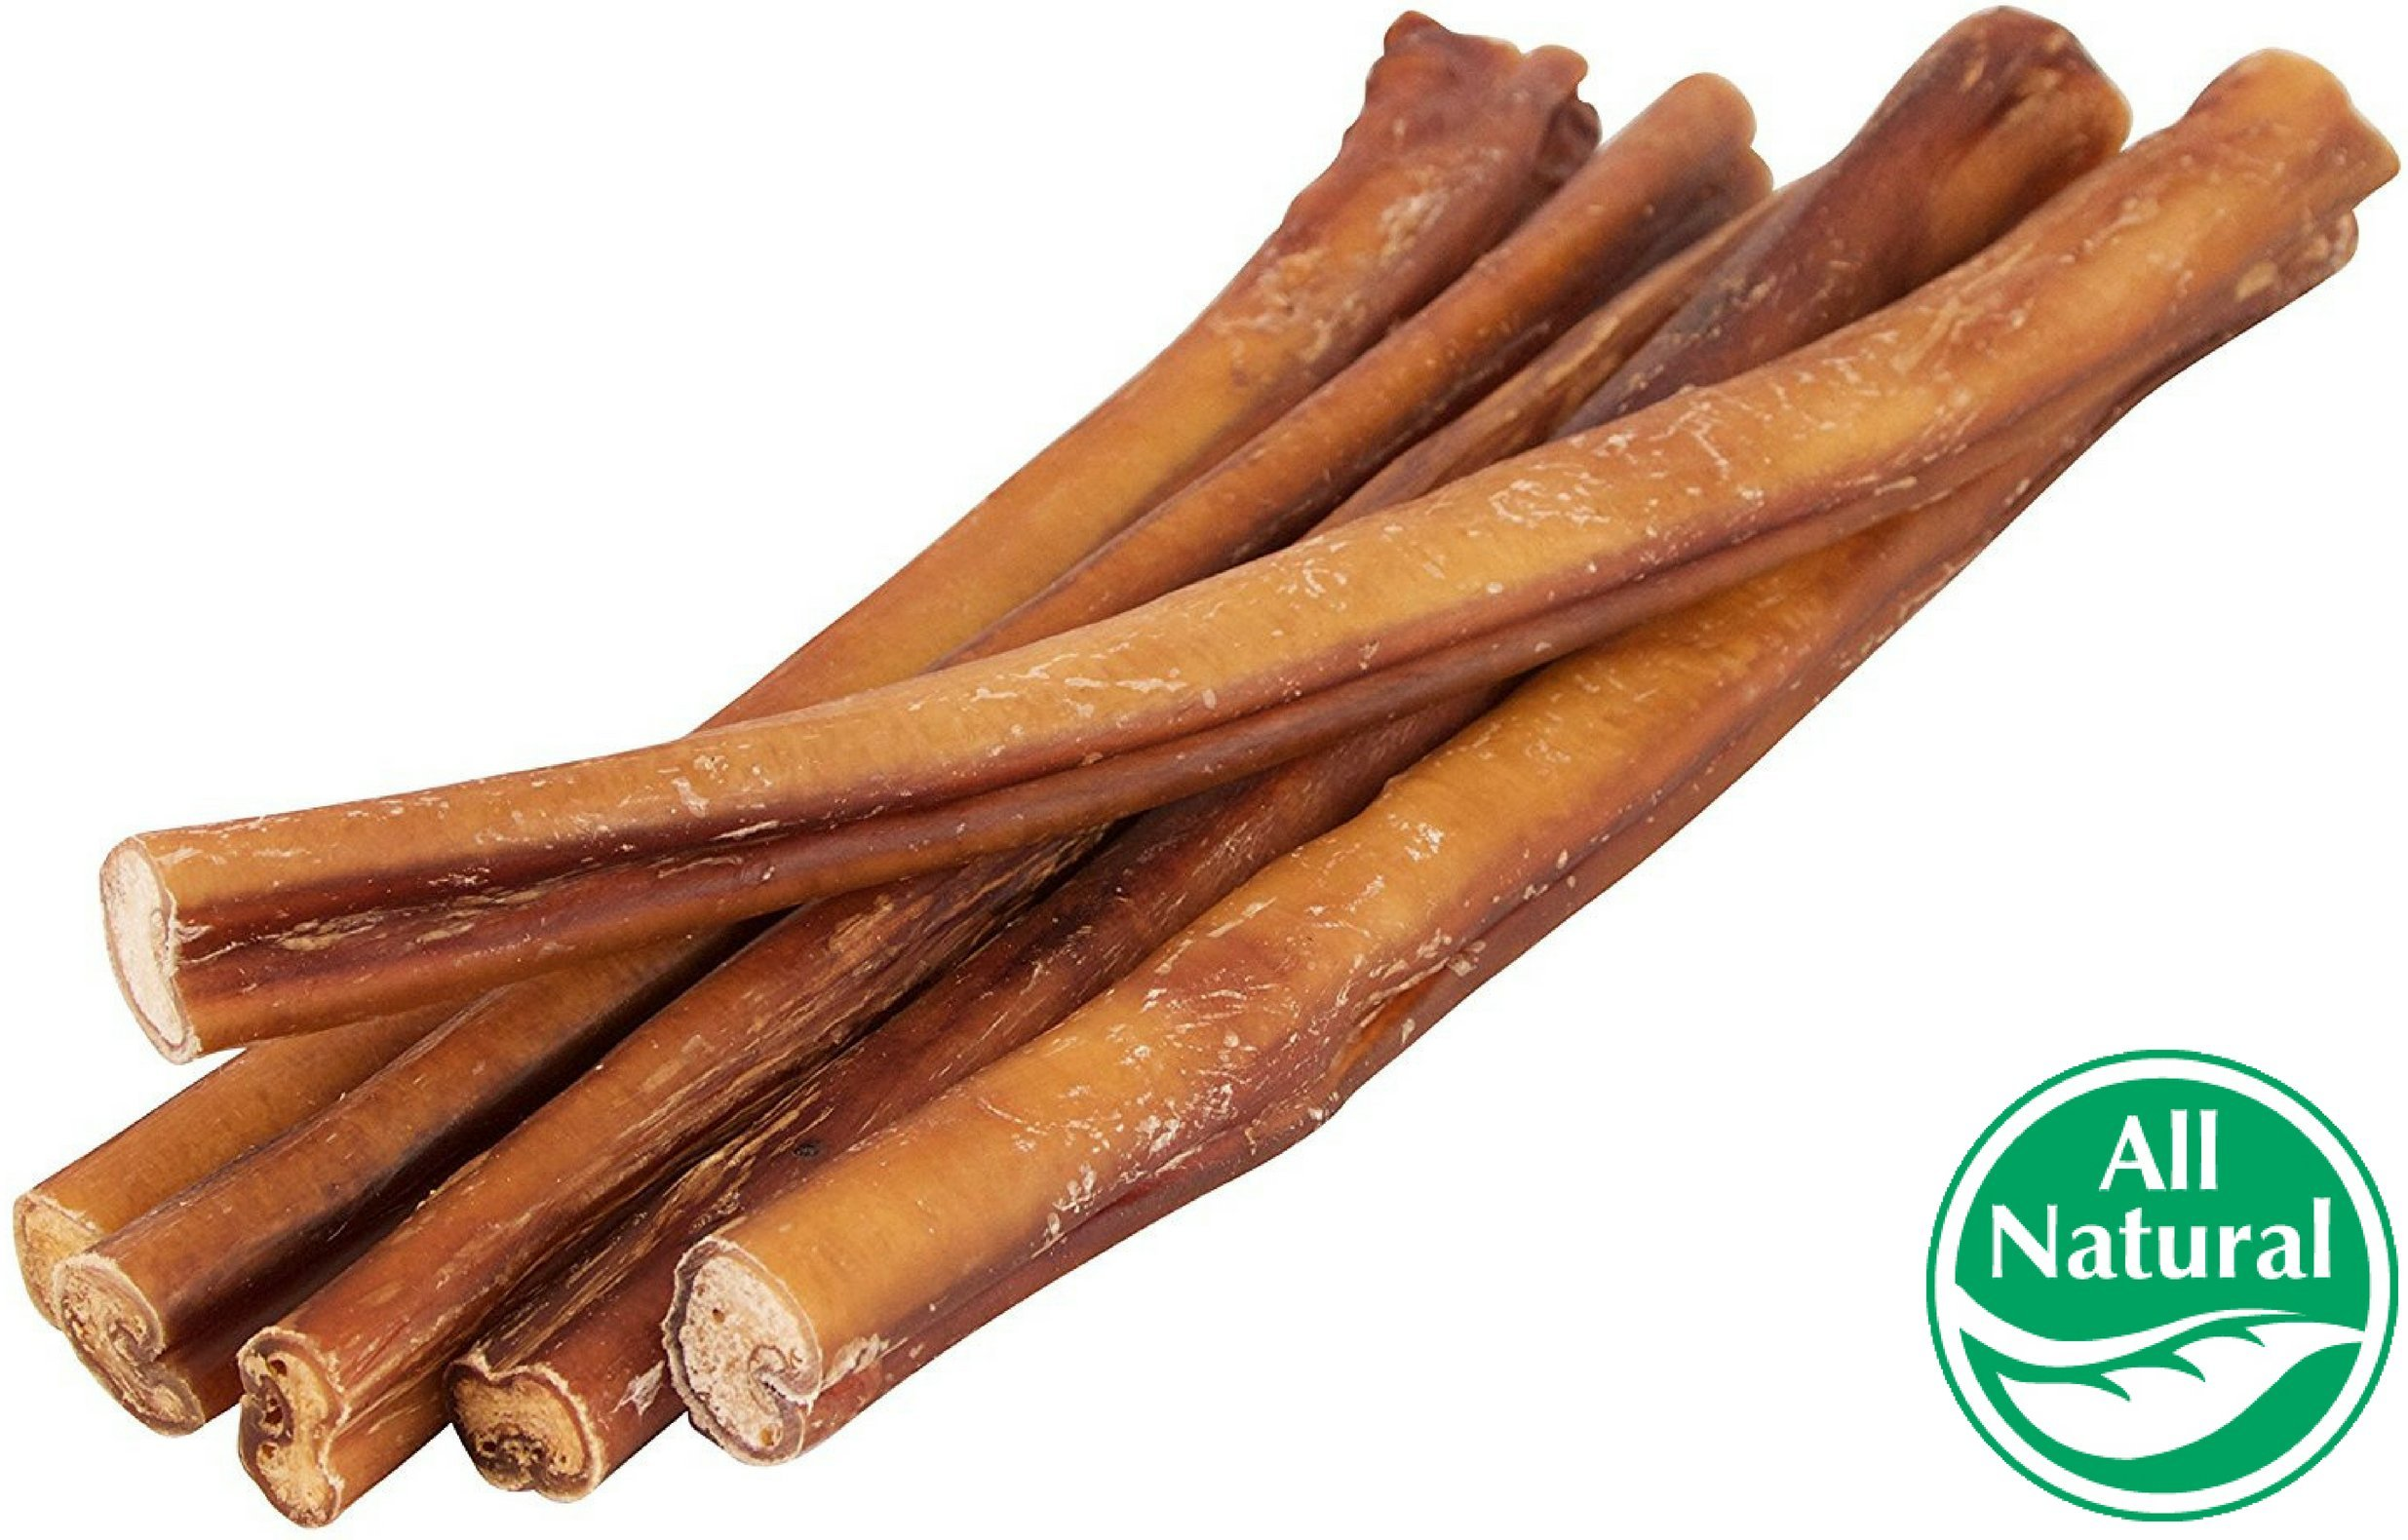 12'' Straight Bully Sticks for Dogs [Large Thickness] (50 Pack) - All Natural & Odorless Bully Bones | Long Lasting Chew Dental Treats | Best Thick Bullie Sticks for K9 or Puppies | Grass-Fed Beef